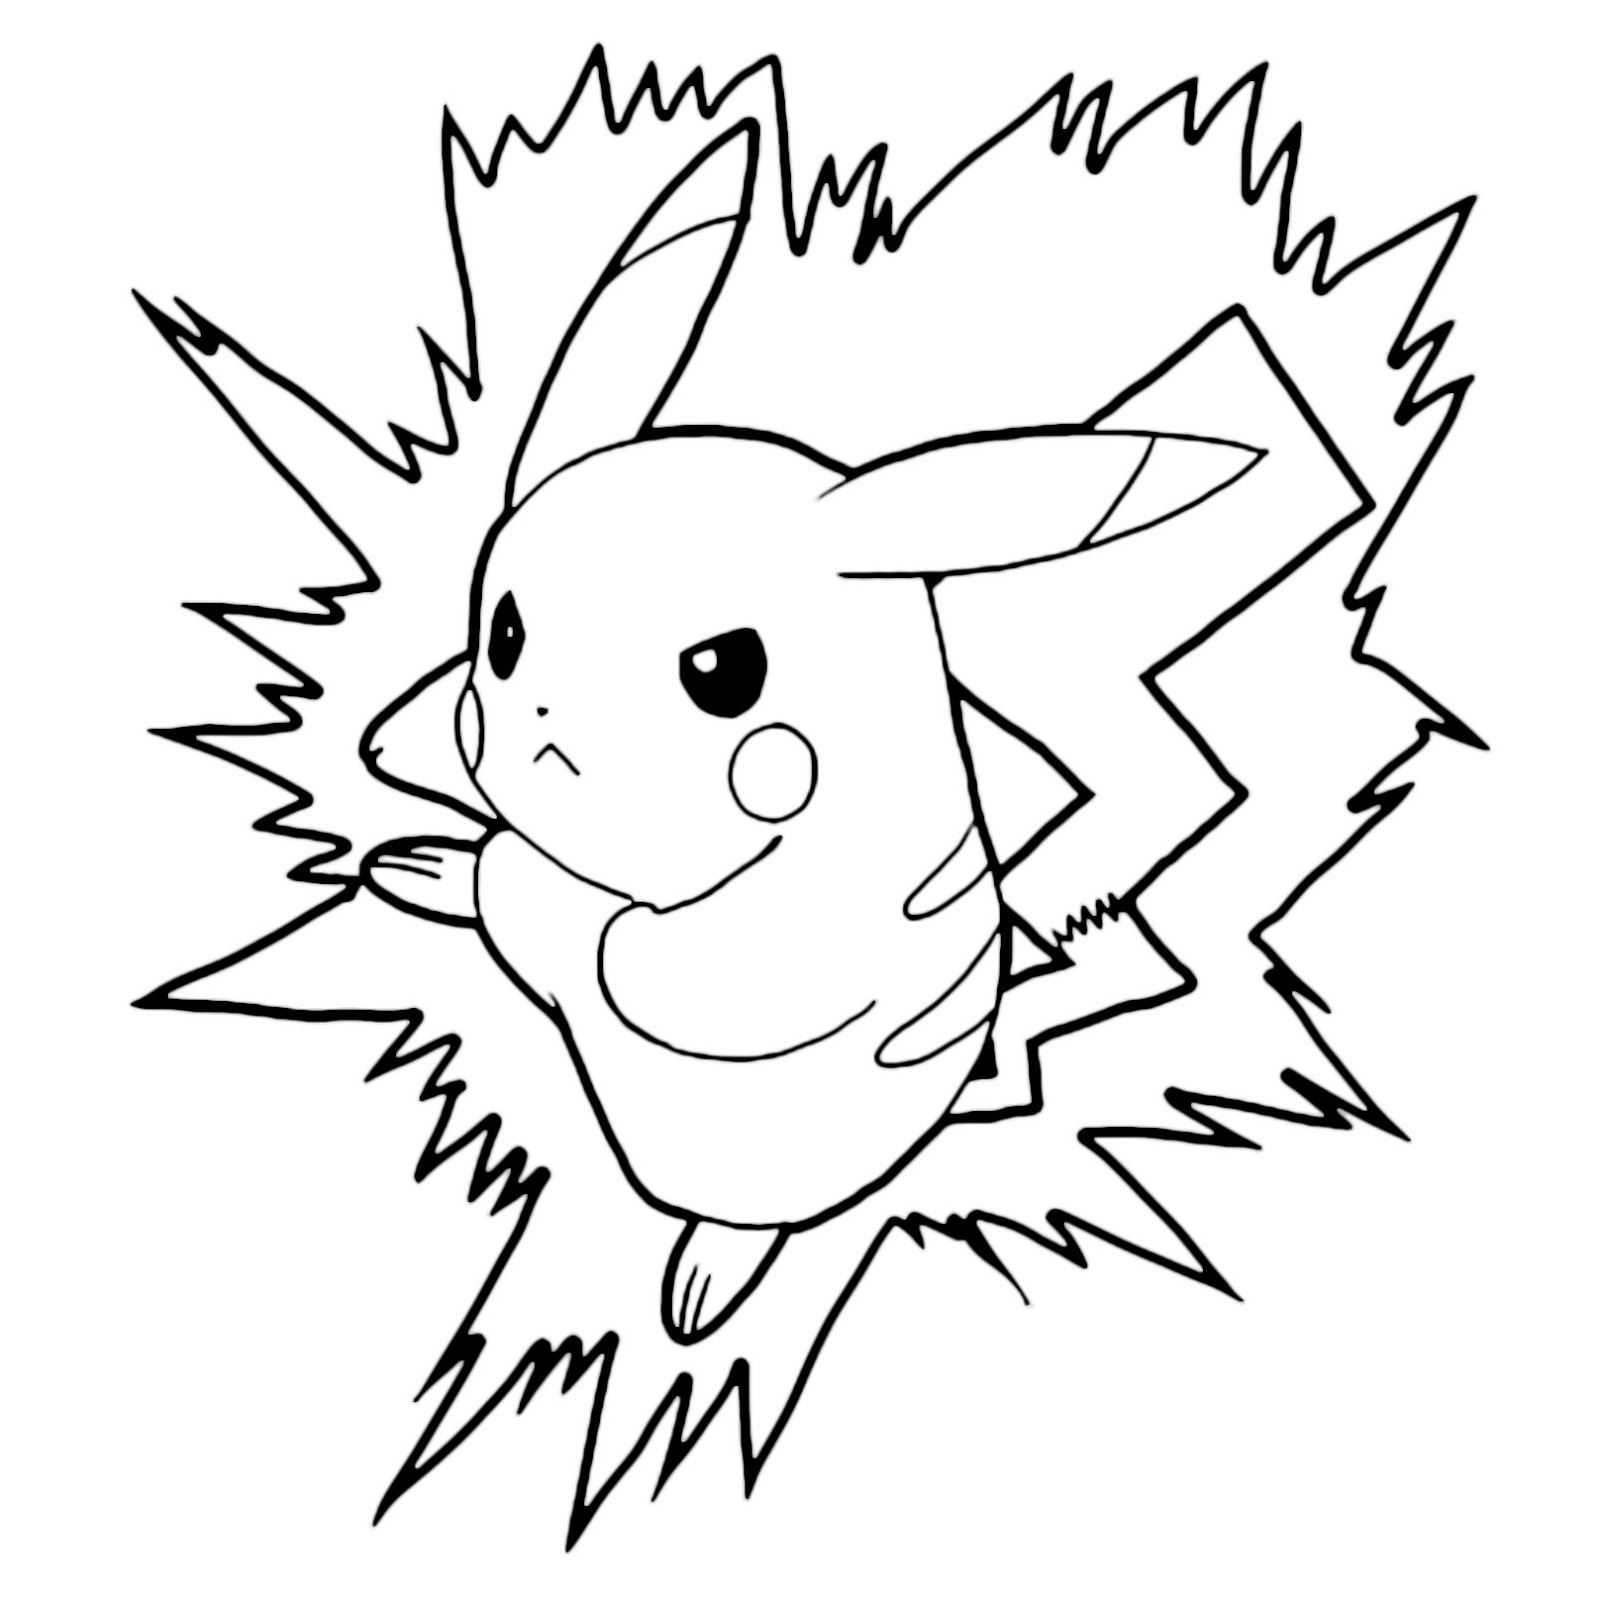 easy angry pokemon pikachu lightning bolt attack coloring pages for grown ups free